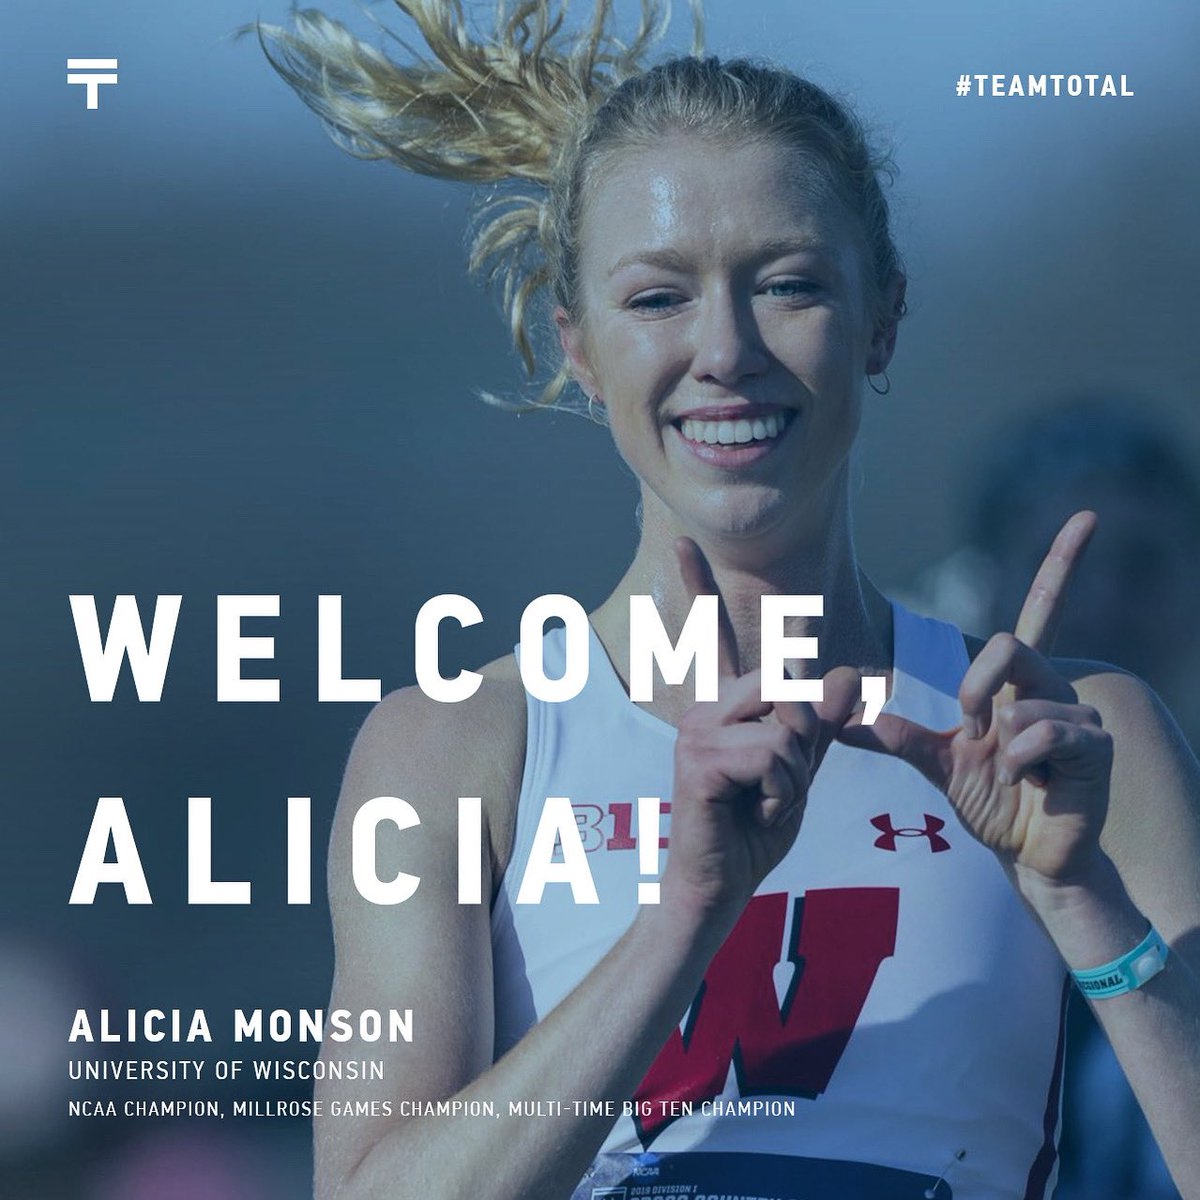 Excited to welcome NCAA Champion @leashamonson to #TeamTotal ! We can't wait to support you on your professional journey! https://t.co/J8TBSE7LB0